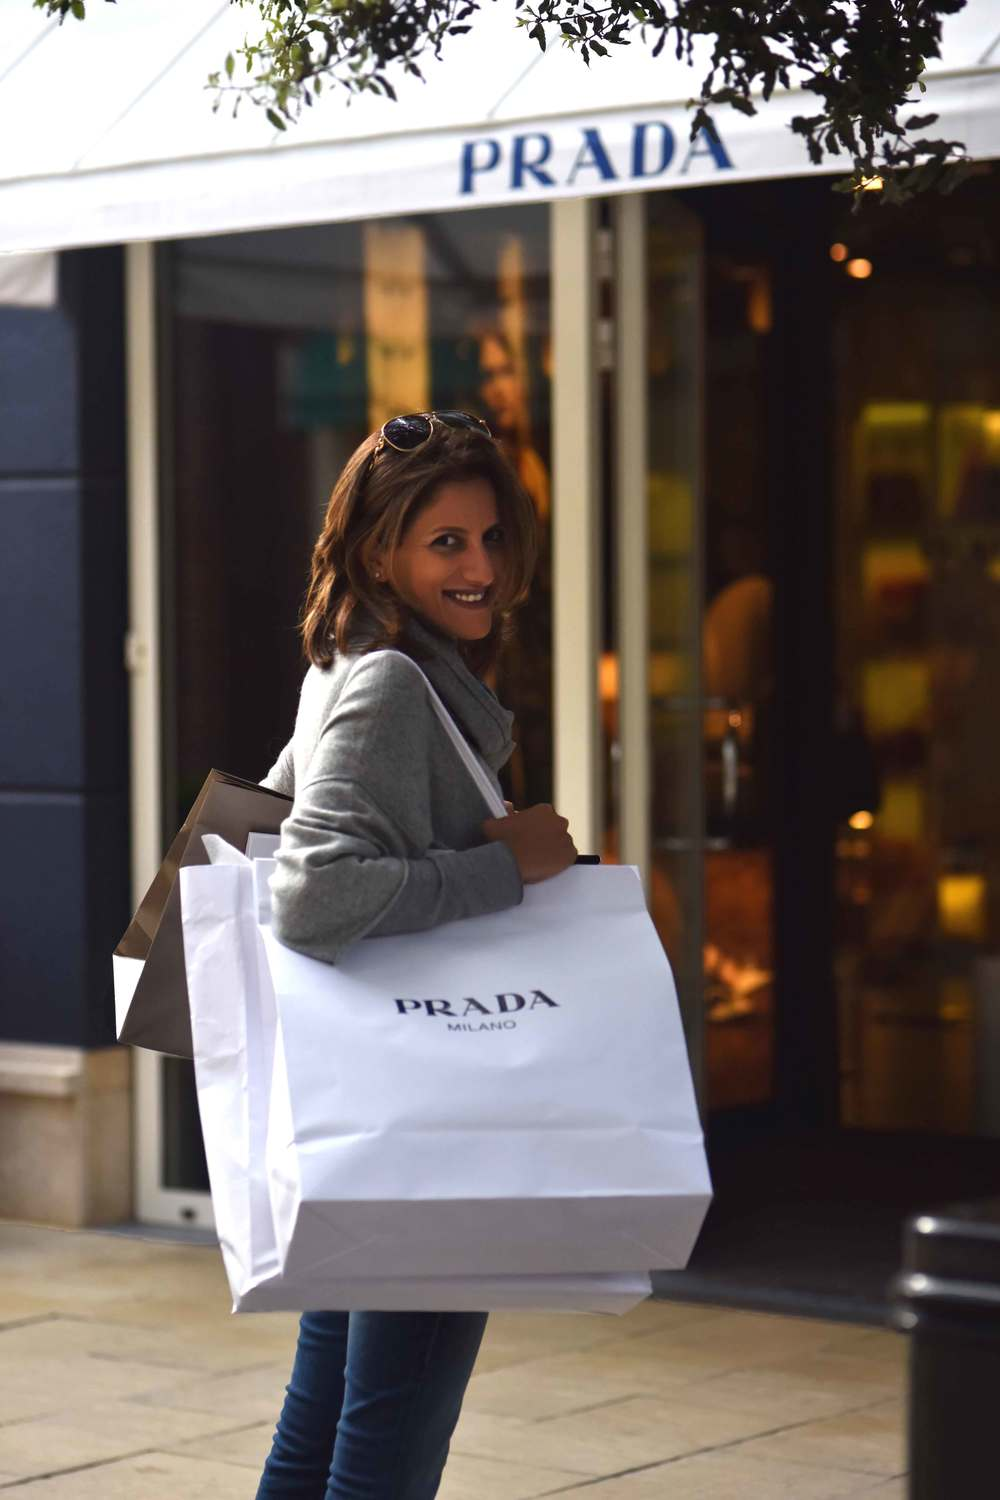 Prada shopping bag, Prada, Designer Outlet Roermond, Netherlands. Photo: Nicola Nolting, image©sourcingstyle.com